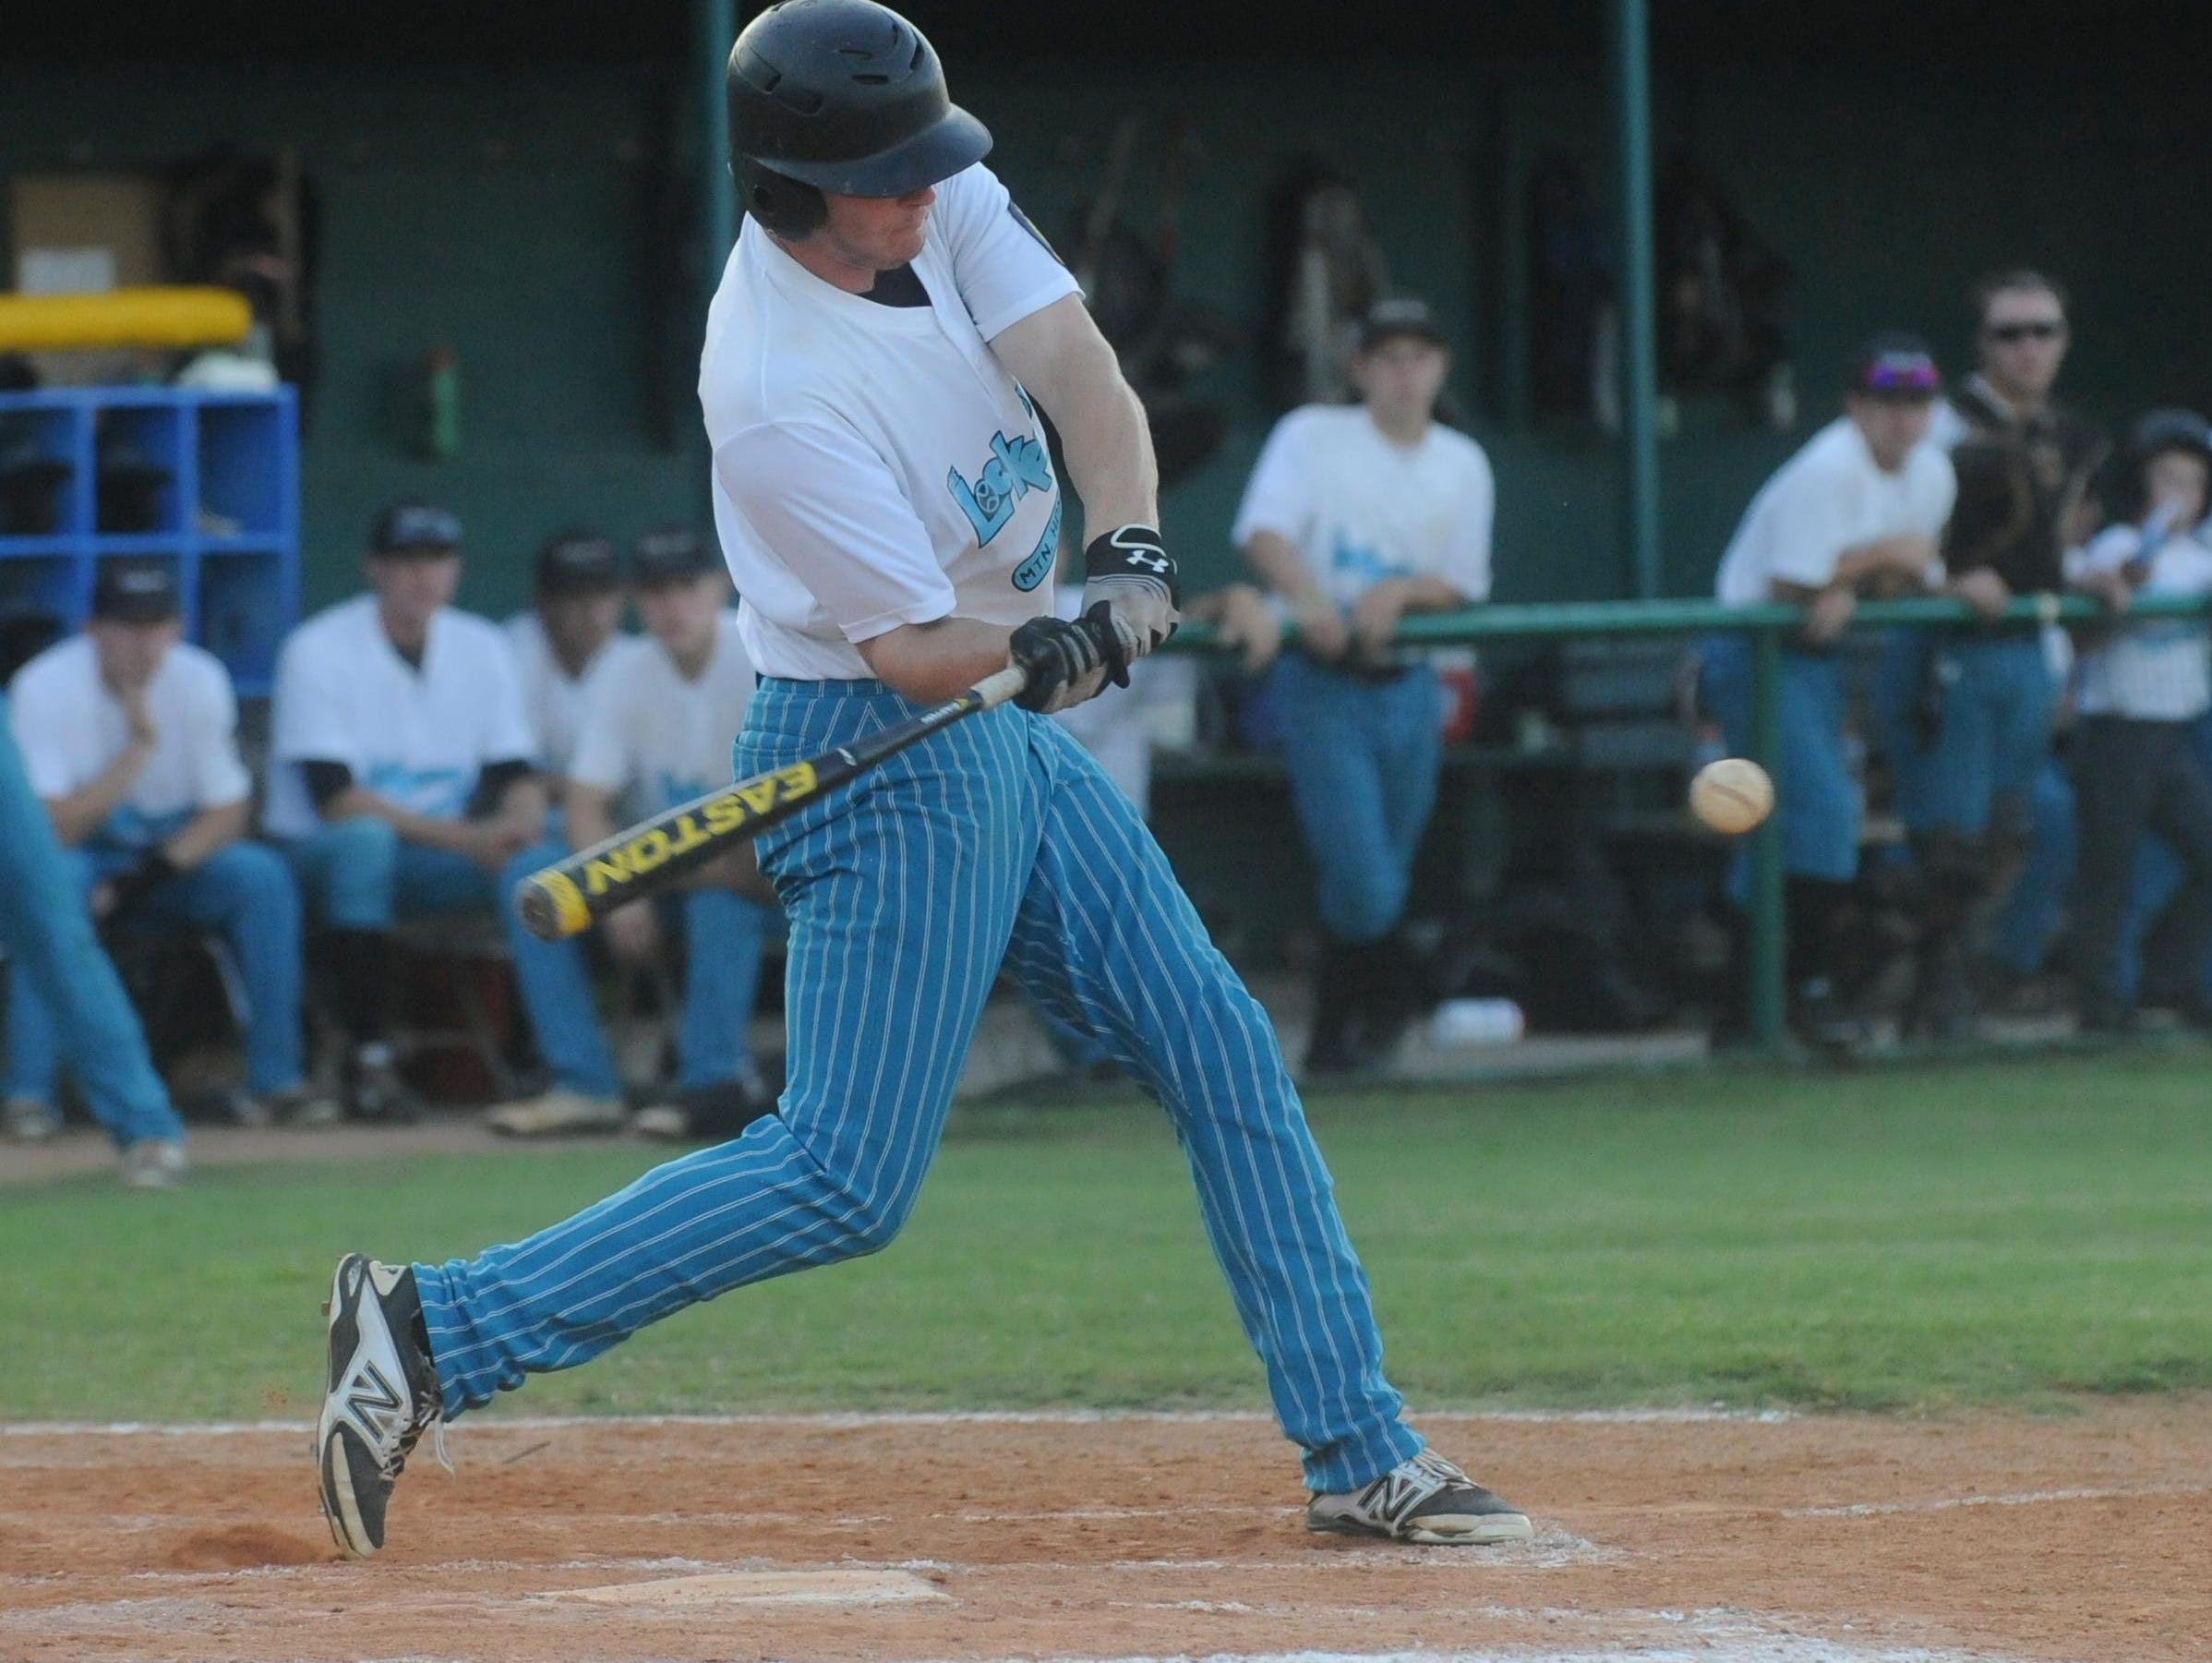 Mountain Home's Austin Jacobelli swings at a pitch during Lockeroom's 13-5 loss to the Blytheville Casons in the first round of the Zone 2 Senior American Legion District Tournament on Friday night at Cooper Park.